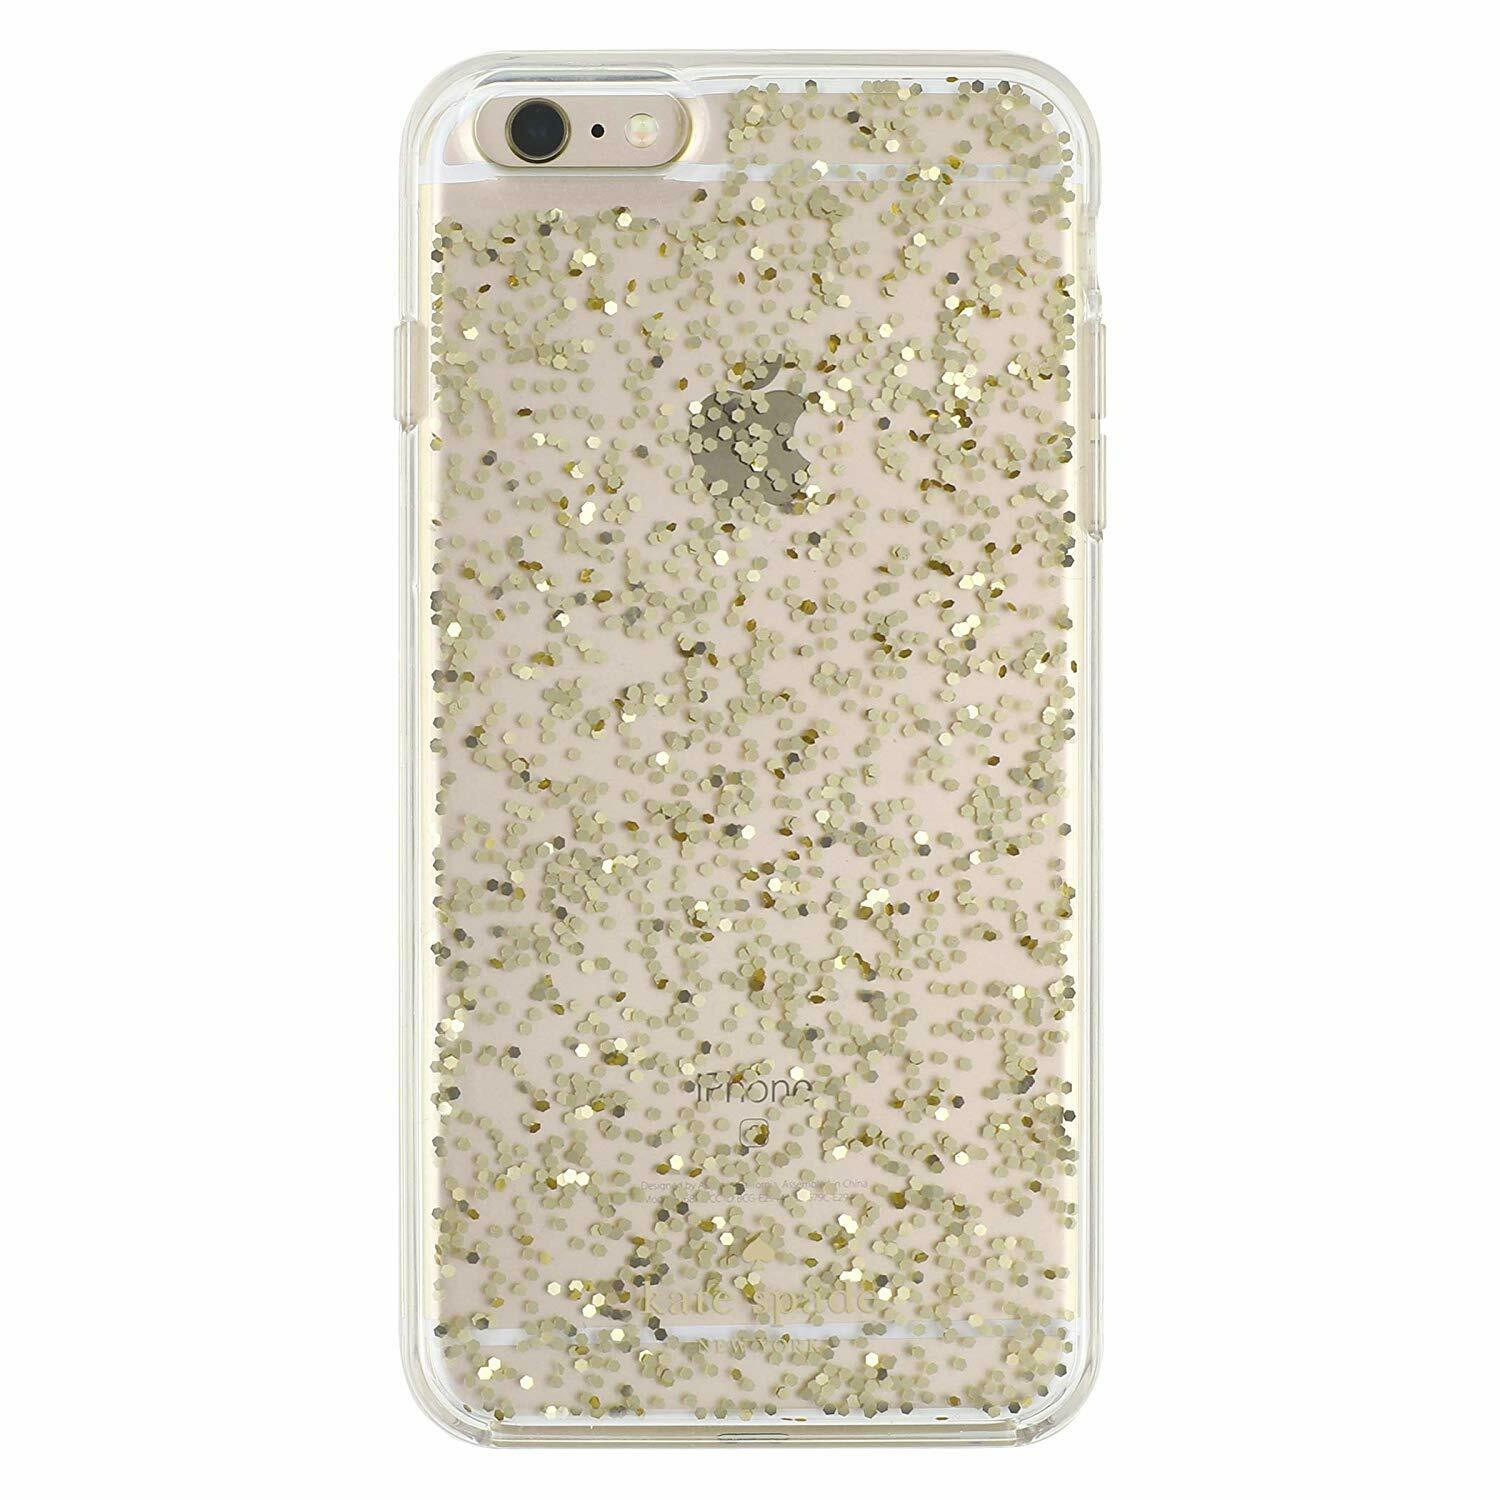 Kate Spade Clear iPhone 6 Plus iPhone 6s Plus Hardshell Case Cover Gold Glitter Cases, Covers & Skins